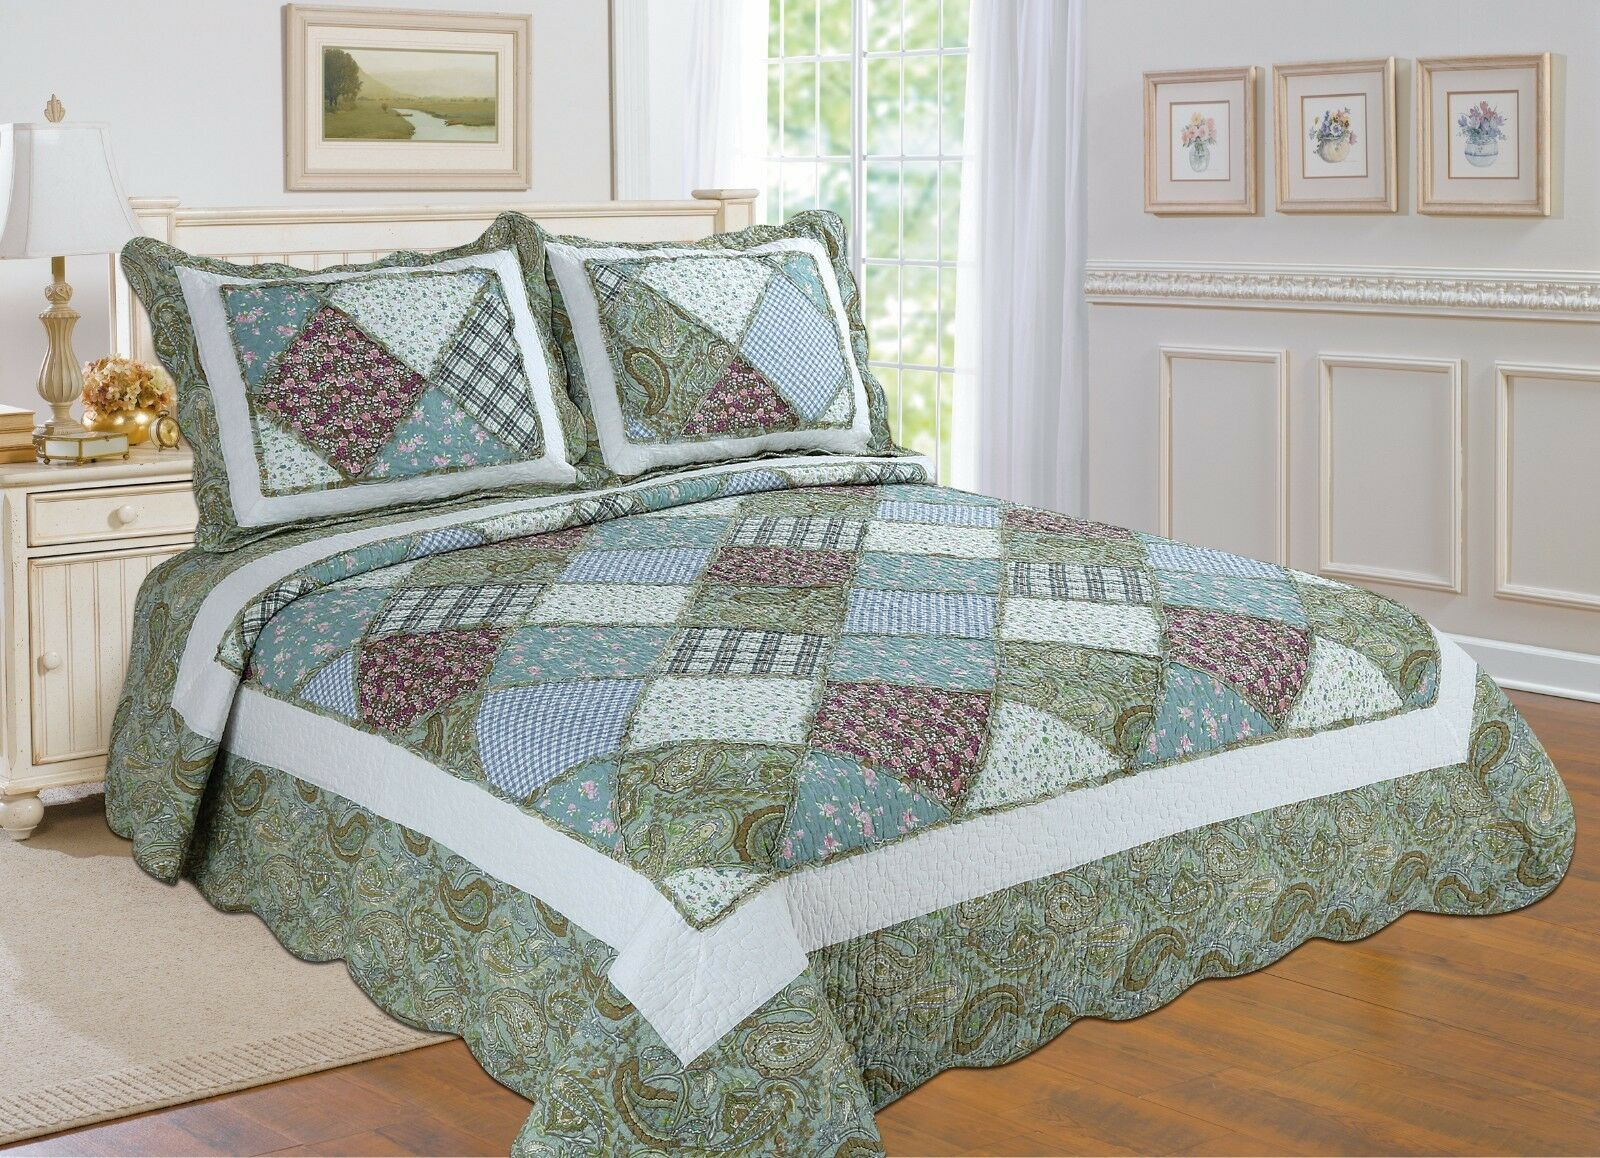 93-All For You 3PC 100% COTTON quilt set, coverlet, bedspread- 3 Sizes